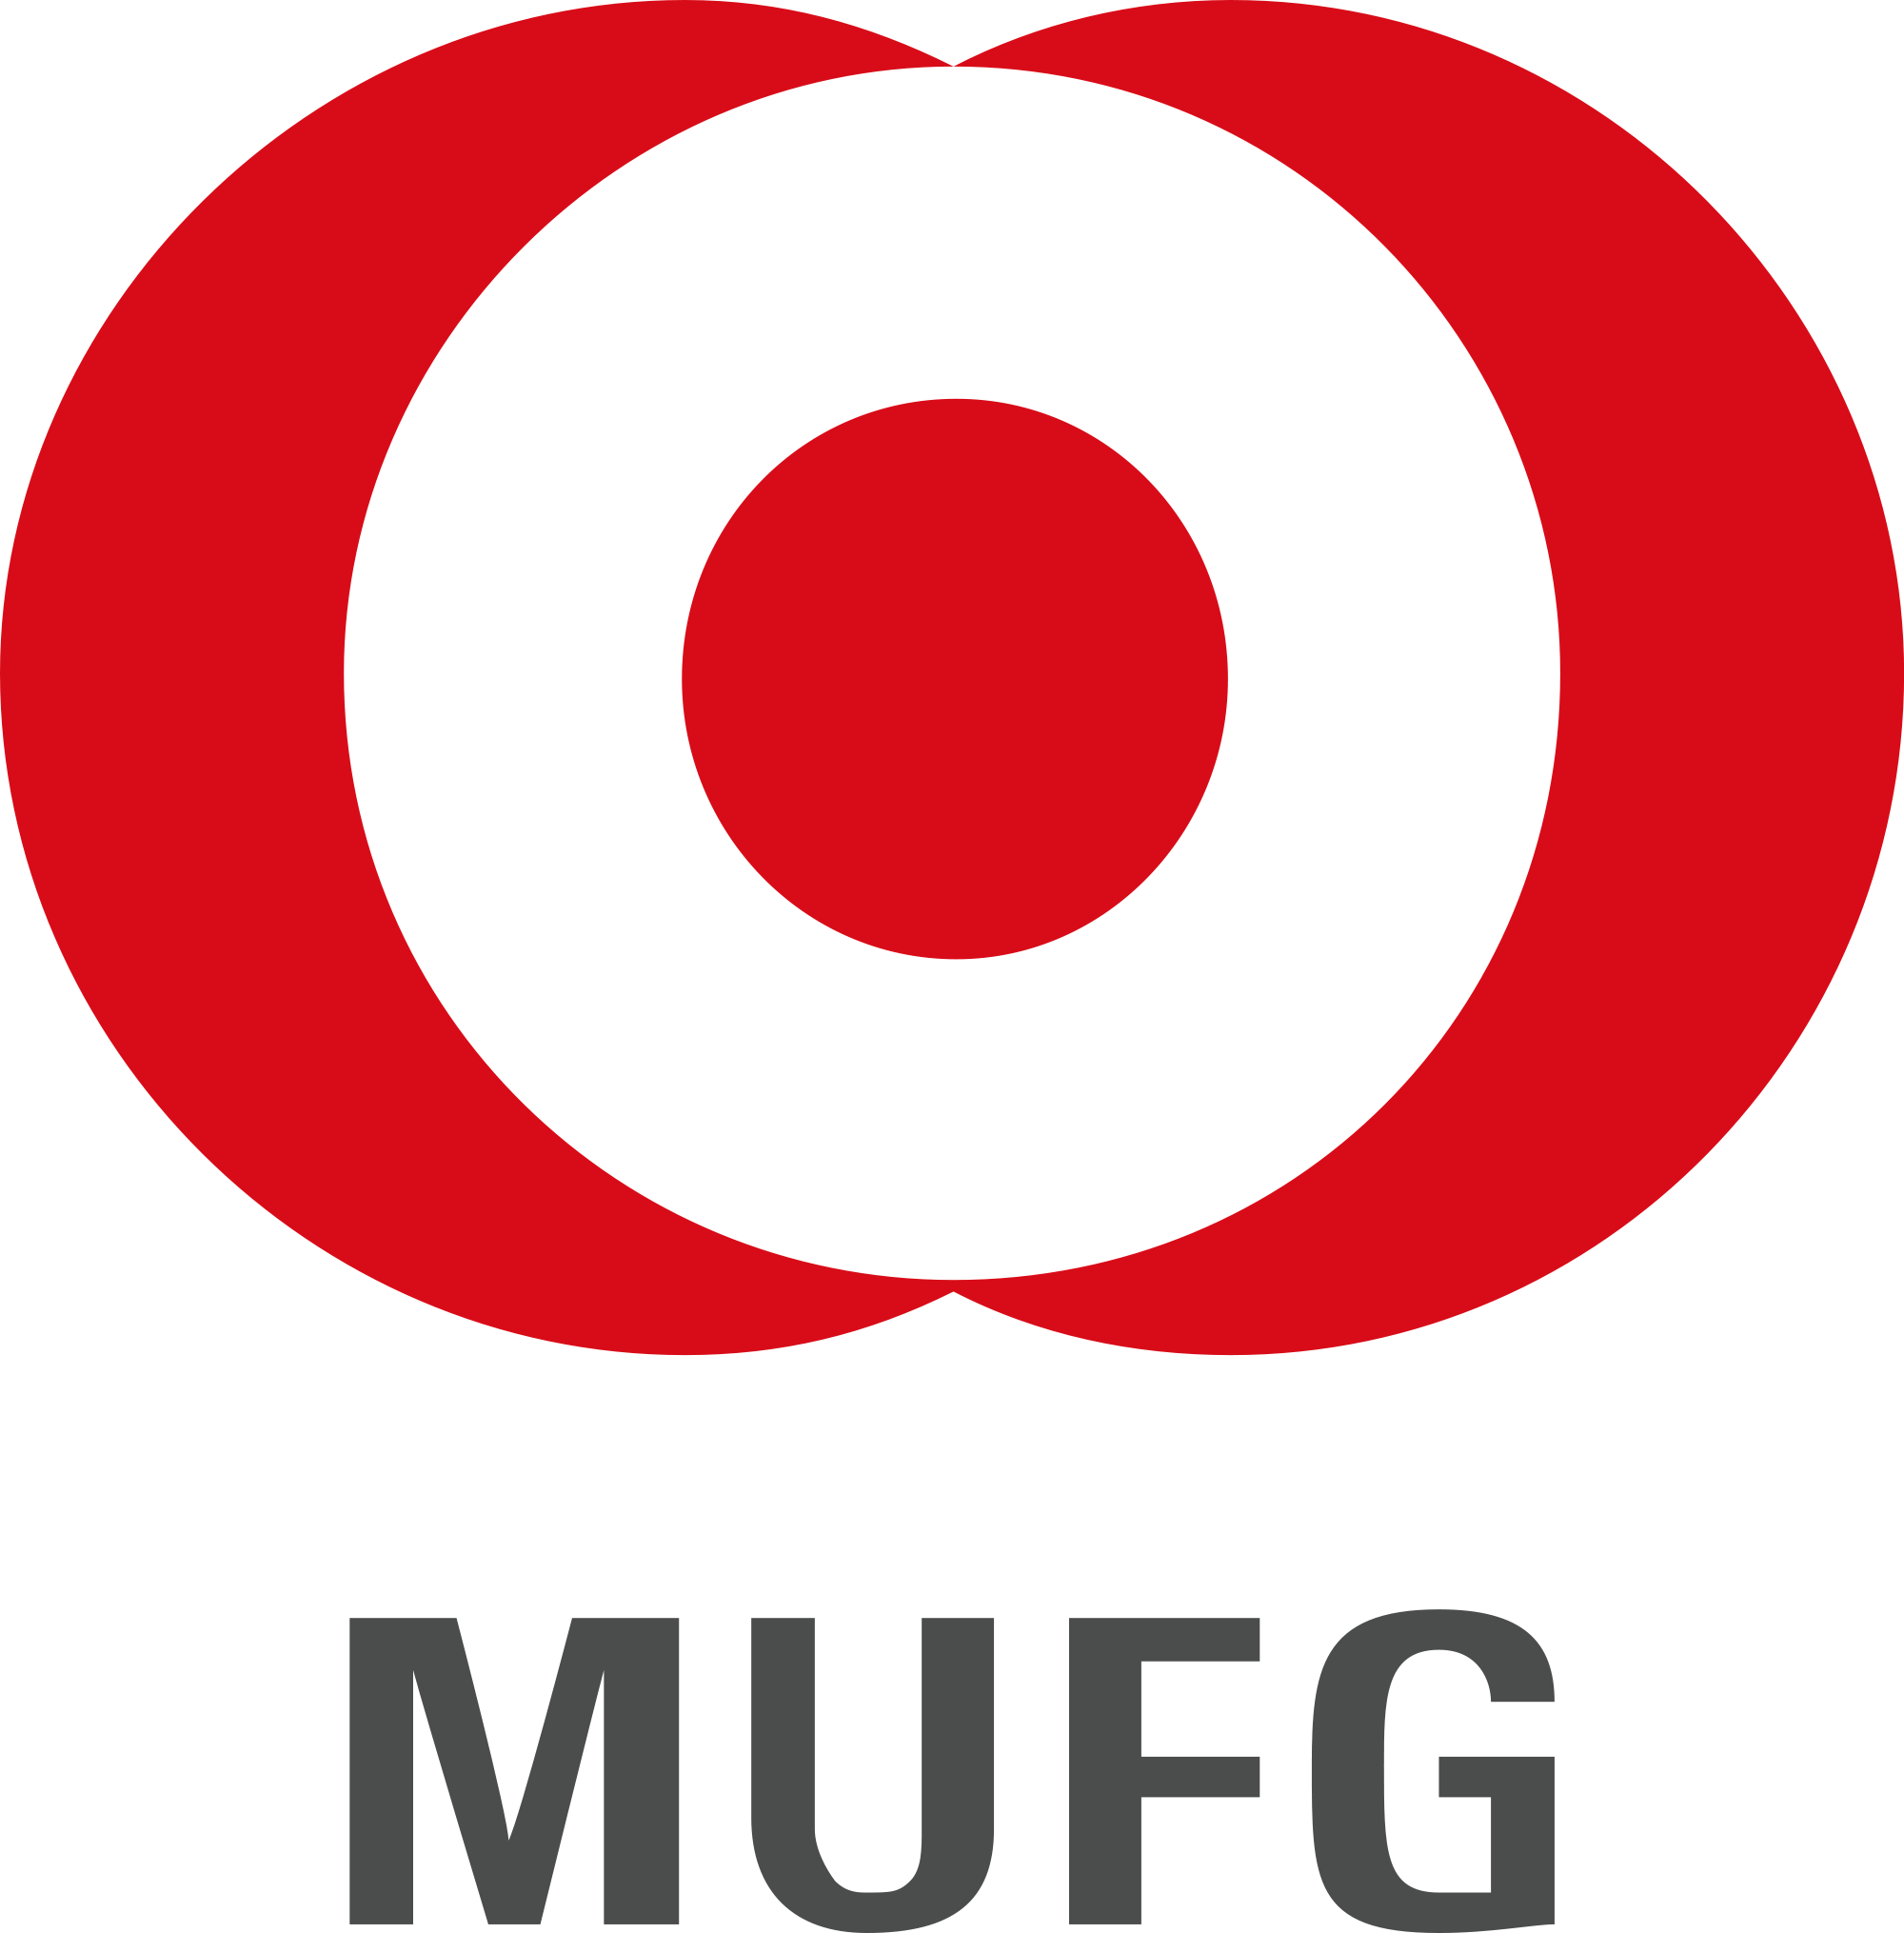 MUFG Logo Wallpaper